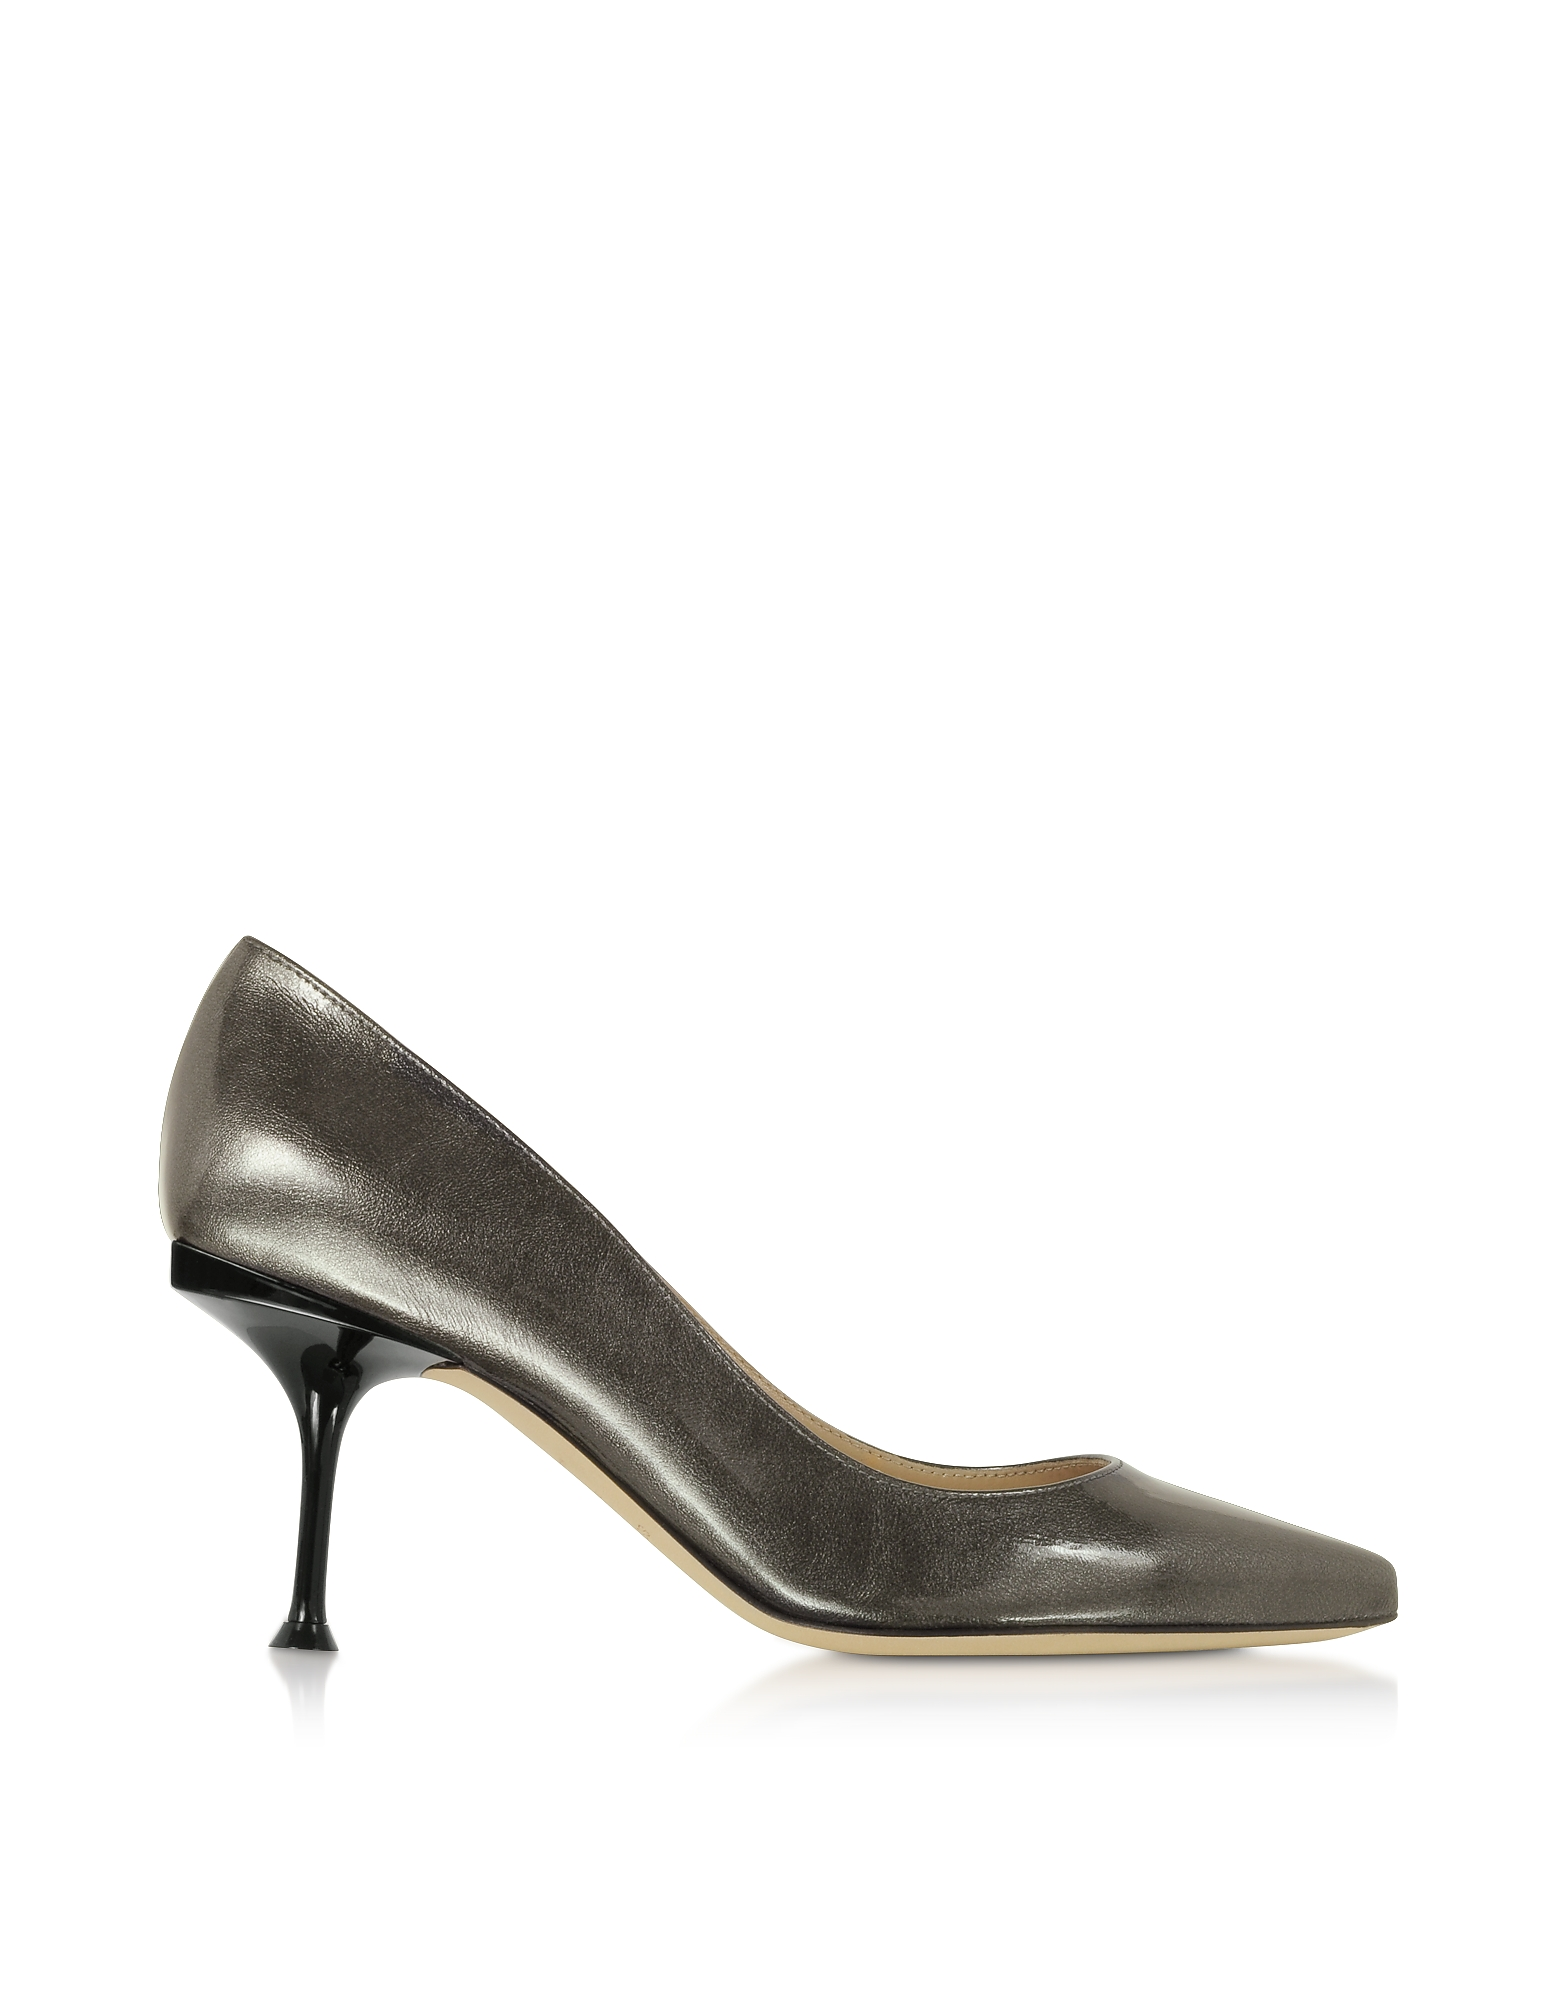 Sergio Rossi Designer Shoes, Glacee Anthracite Metallic Leather Pumps